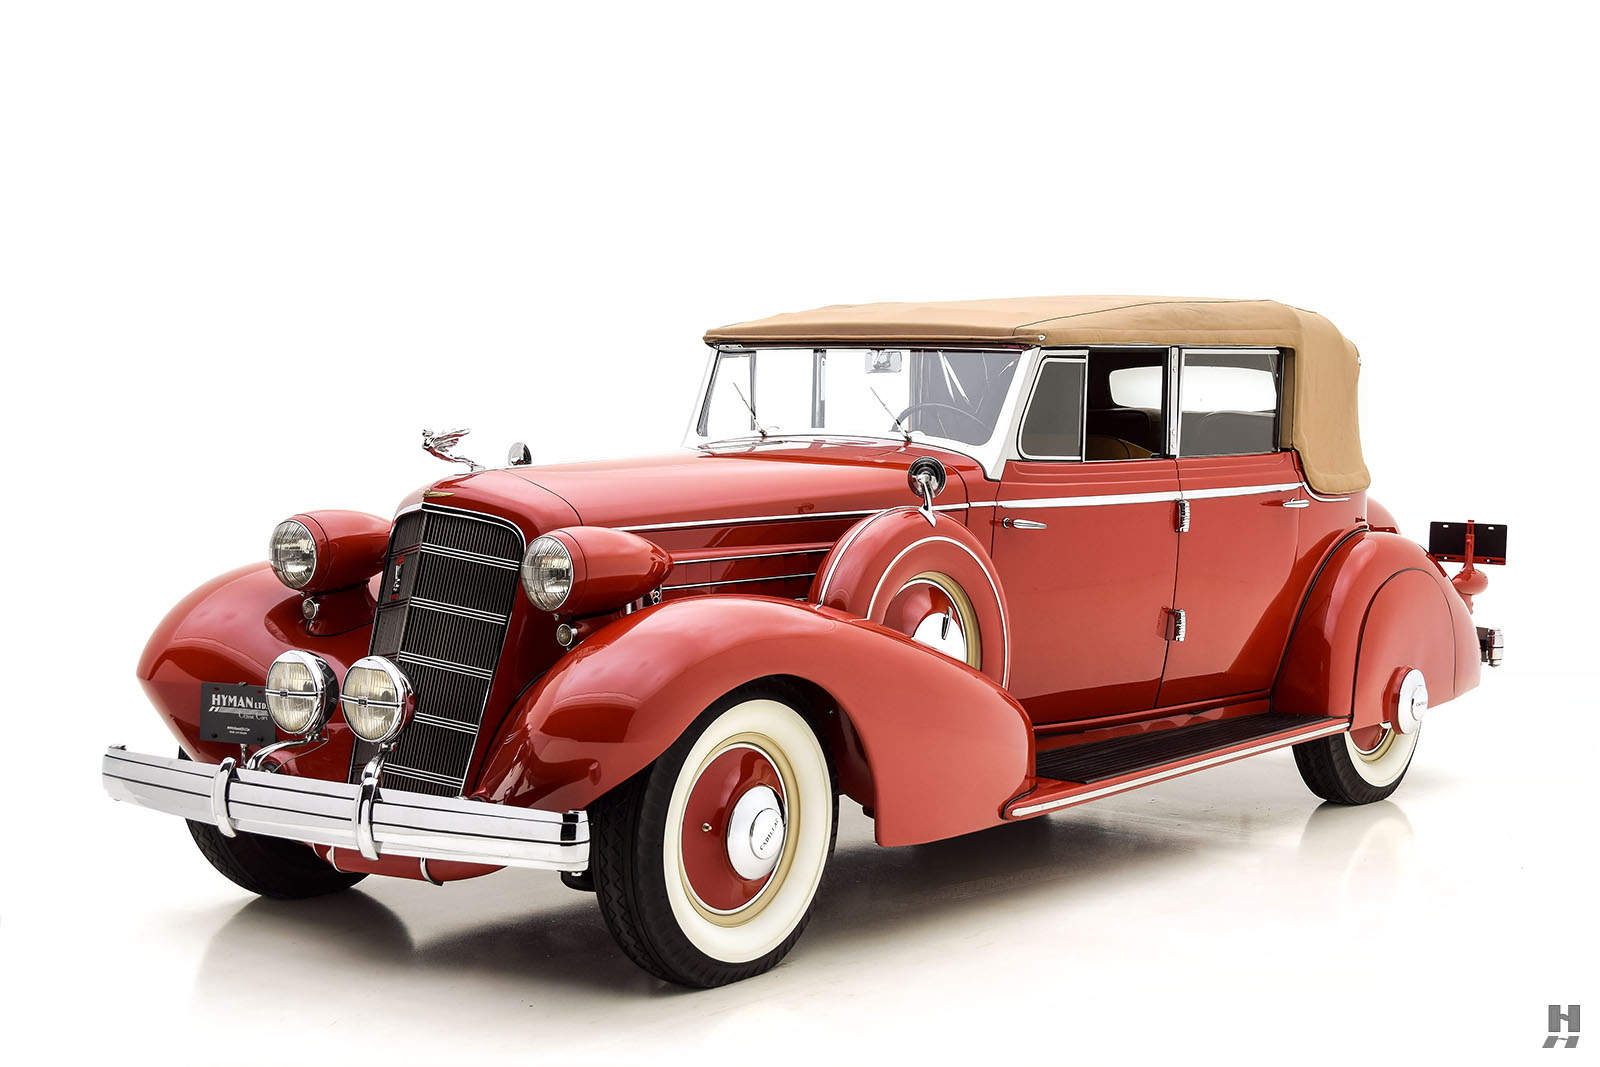 1935 Cadillac 355 D Phaeton For Sale | Buy Classic Cars ...